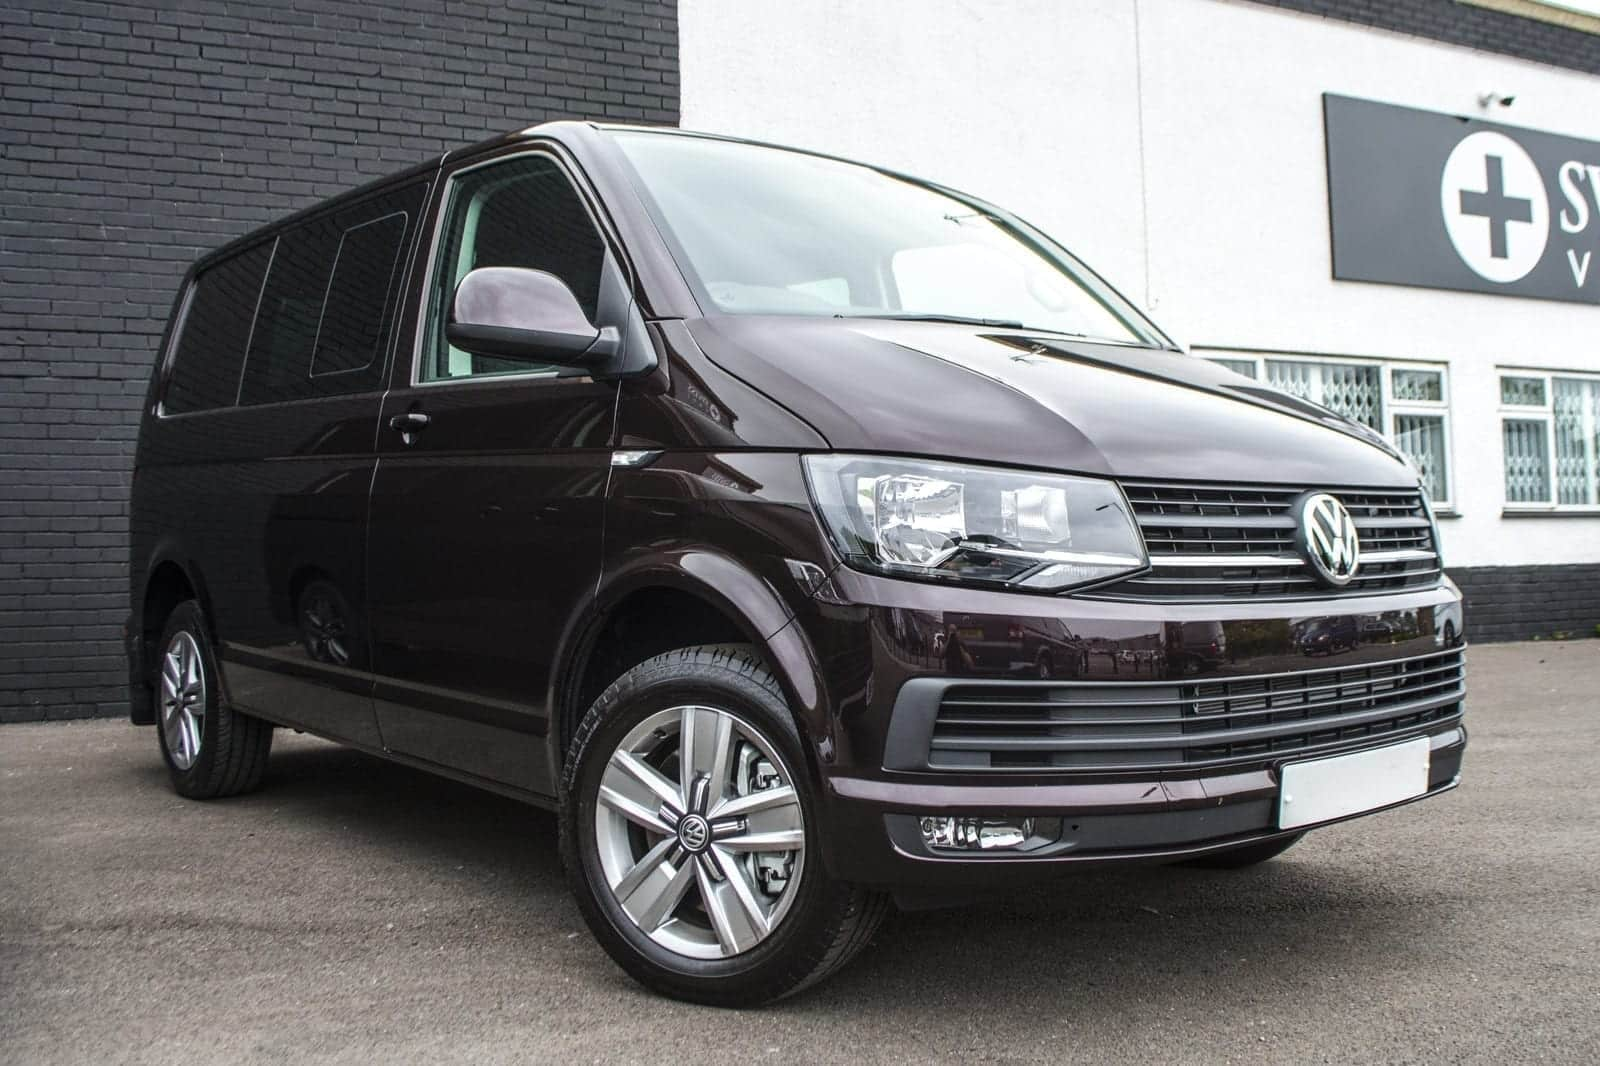 vw transporter highline kombi swiss vans ltd bridgend. Black Bedroom Furniture Sets. Home Design Ideas